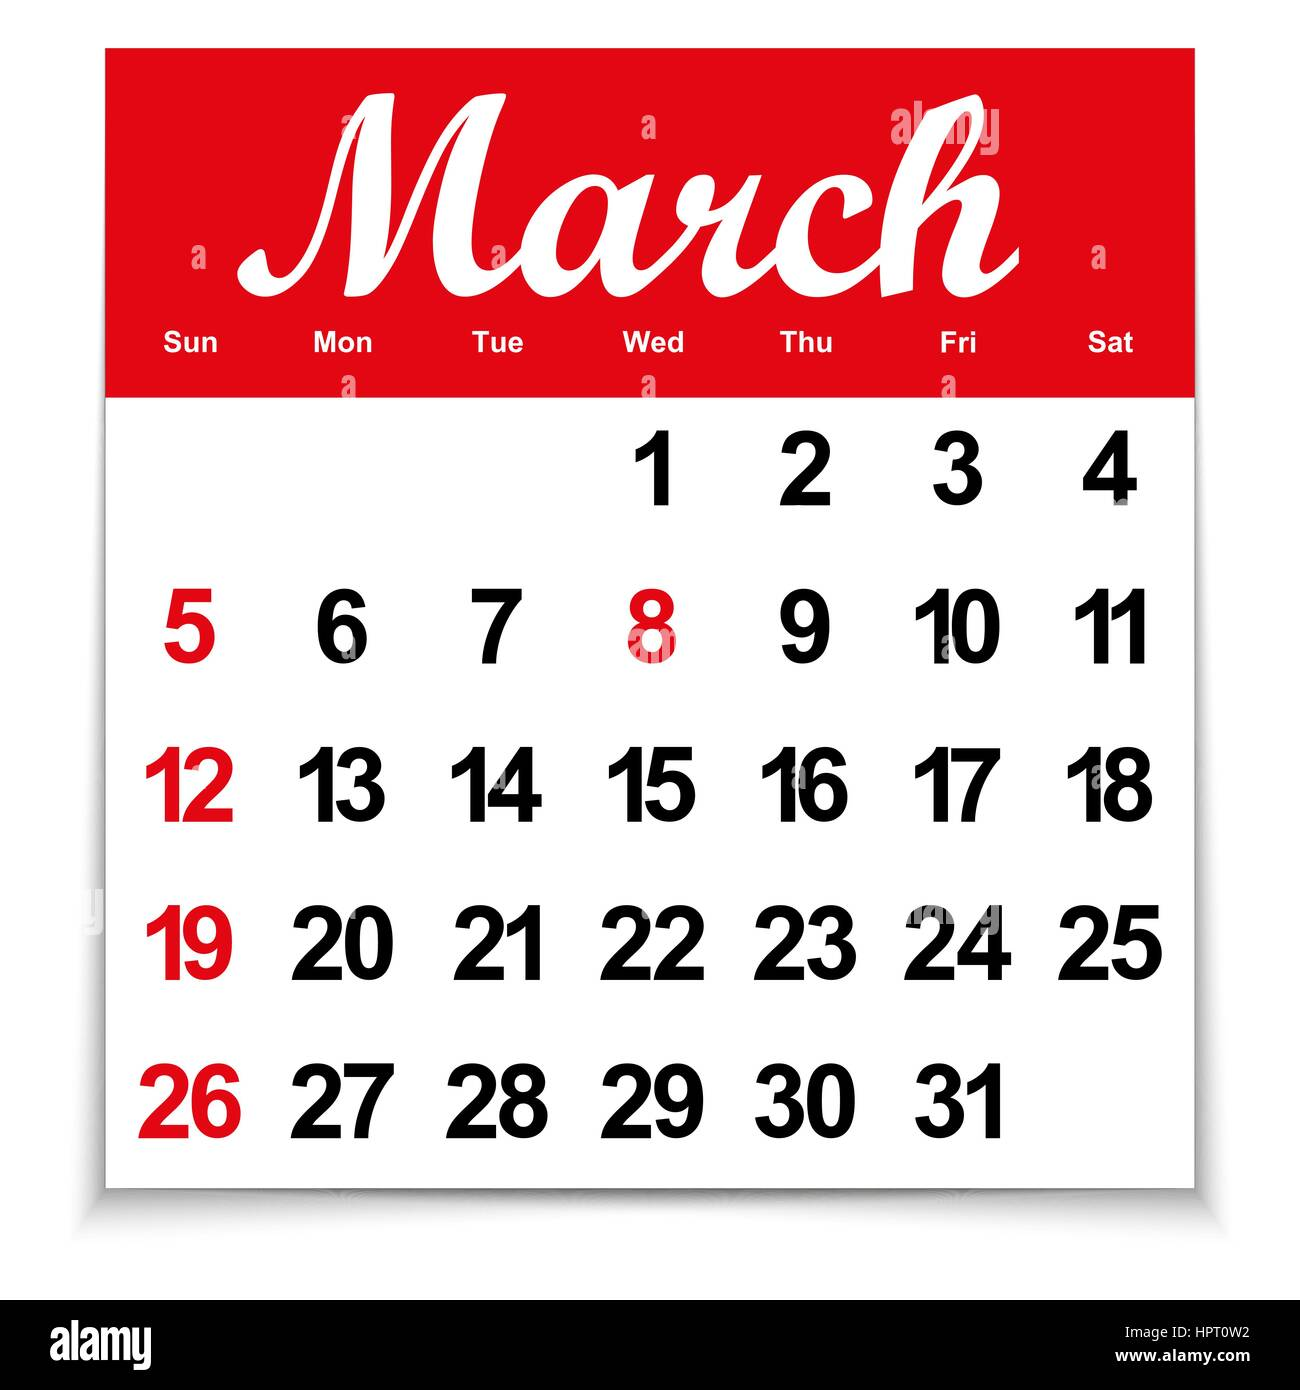 Leaf Calendar With The Month Of March Days Of The